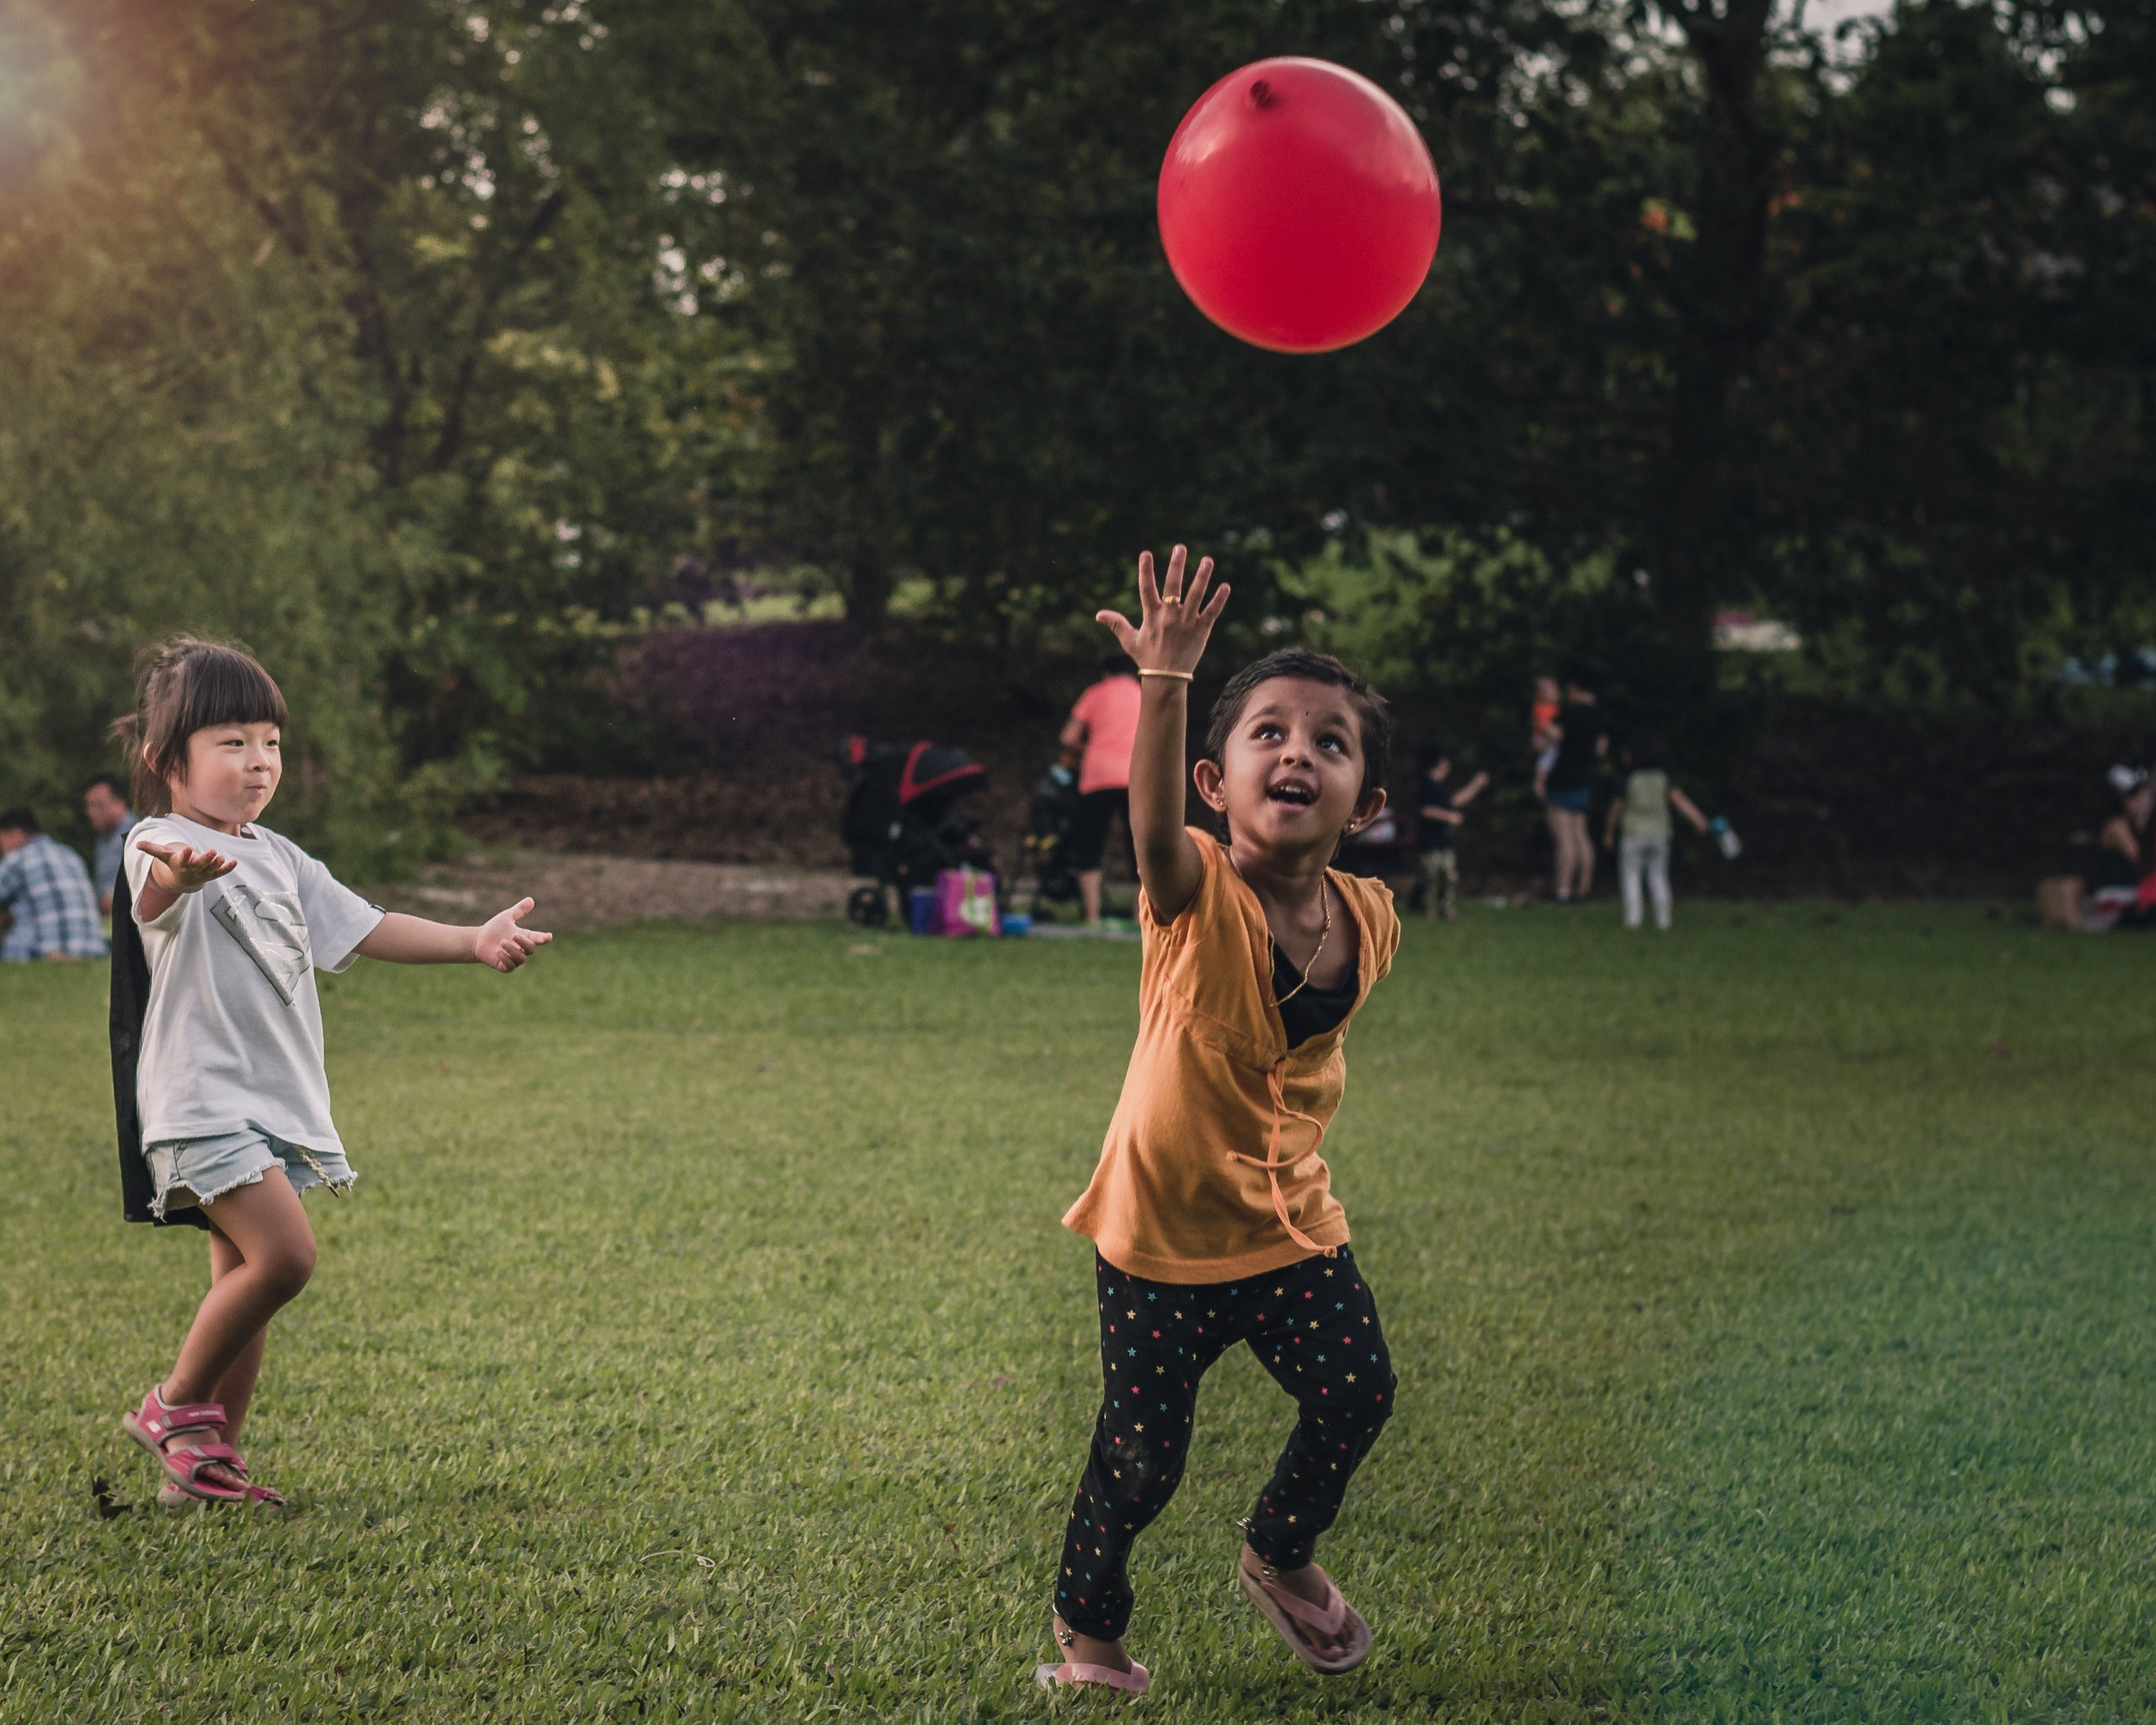 for kids - Why Exercise Is Great! Get up and move! Here are a bunch of reasons why exercise is great (and how you can do more of it AND have fun!)